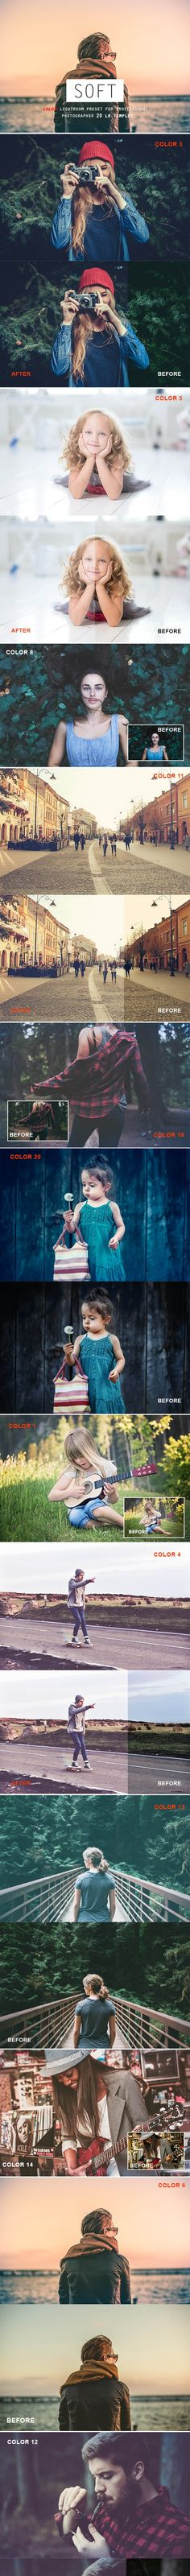 Buy 20 Soft Color Lightroom Preset by fokkira on GraphicRiver. Lightroom 3, Professional Lightroom Presets, Photoshop Actions, Any Images, Best Wordpress Themes, Soft Colors, Professional Photographer, Background Images, 8th Of March